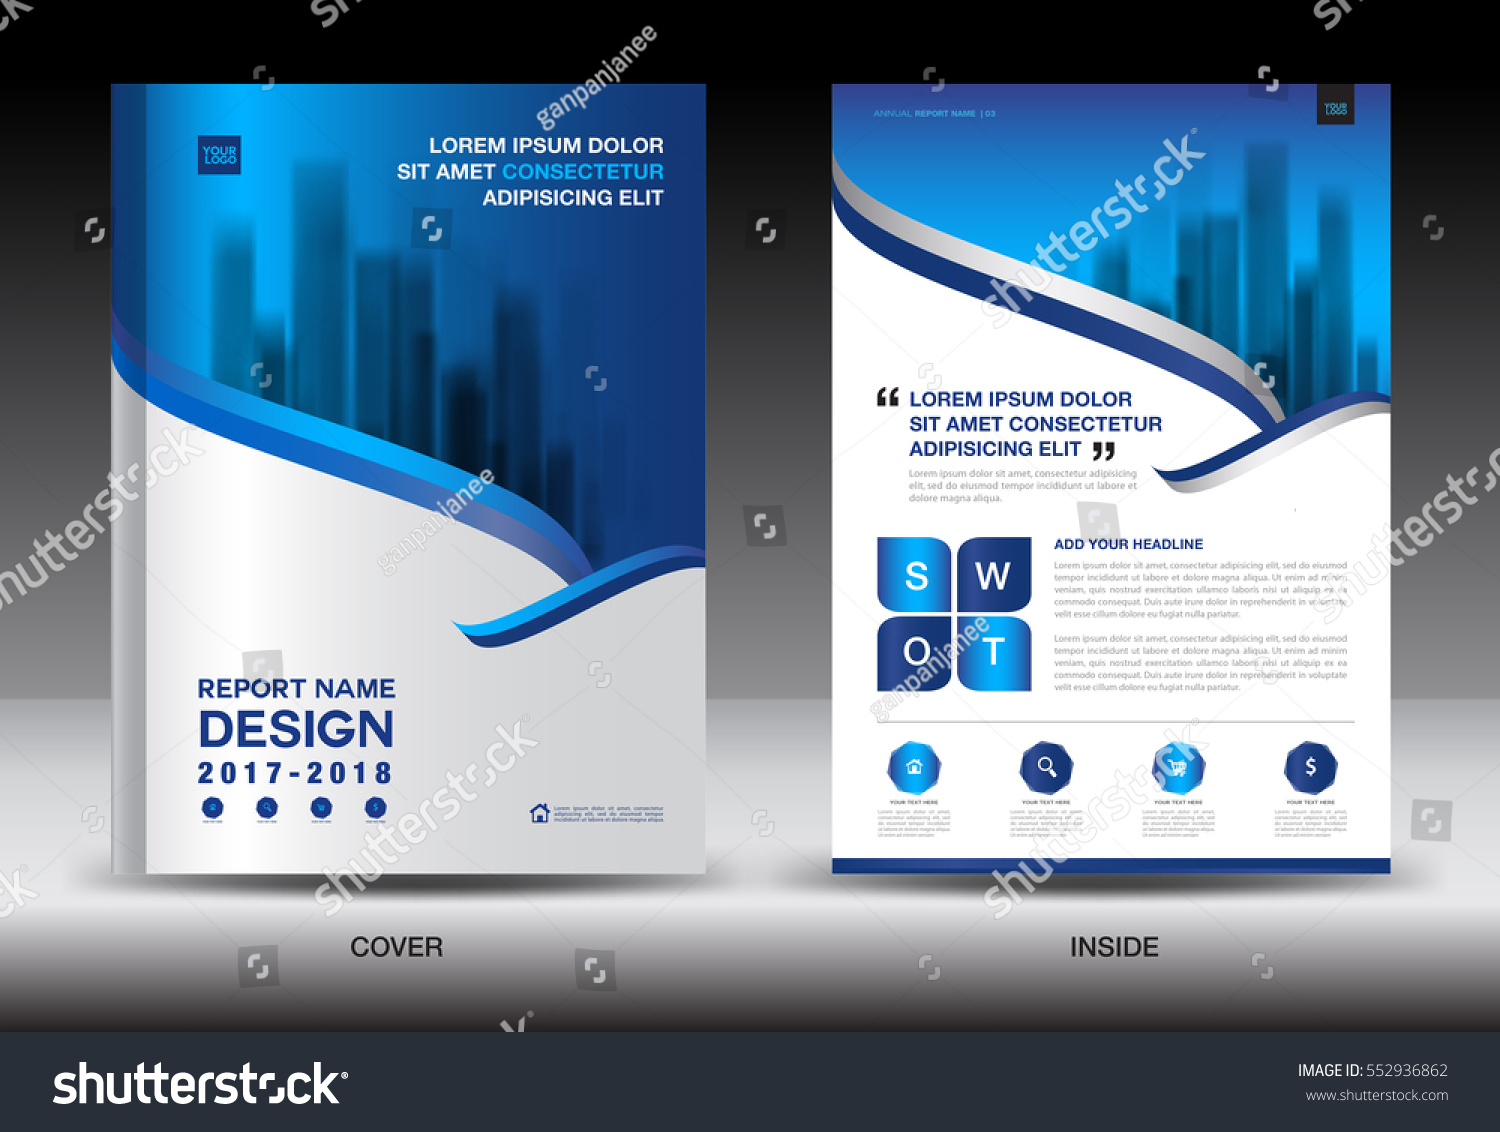 annual report brochure flyer template white cover design annual report brochure flyer template white cover design business flyer template advertisement